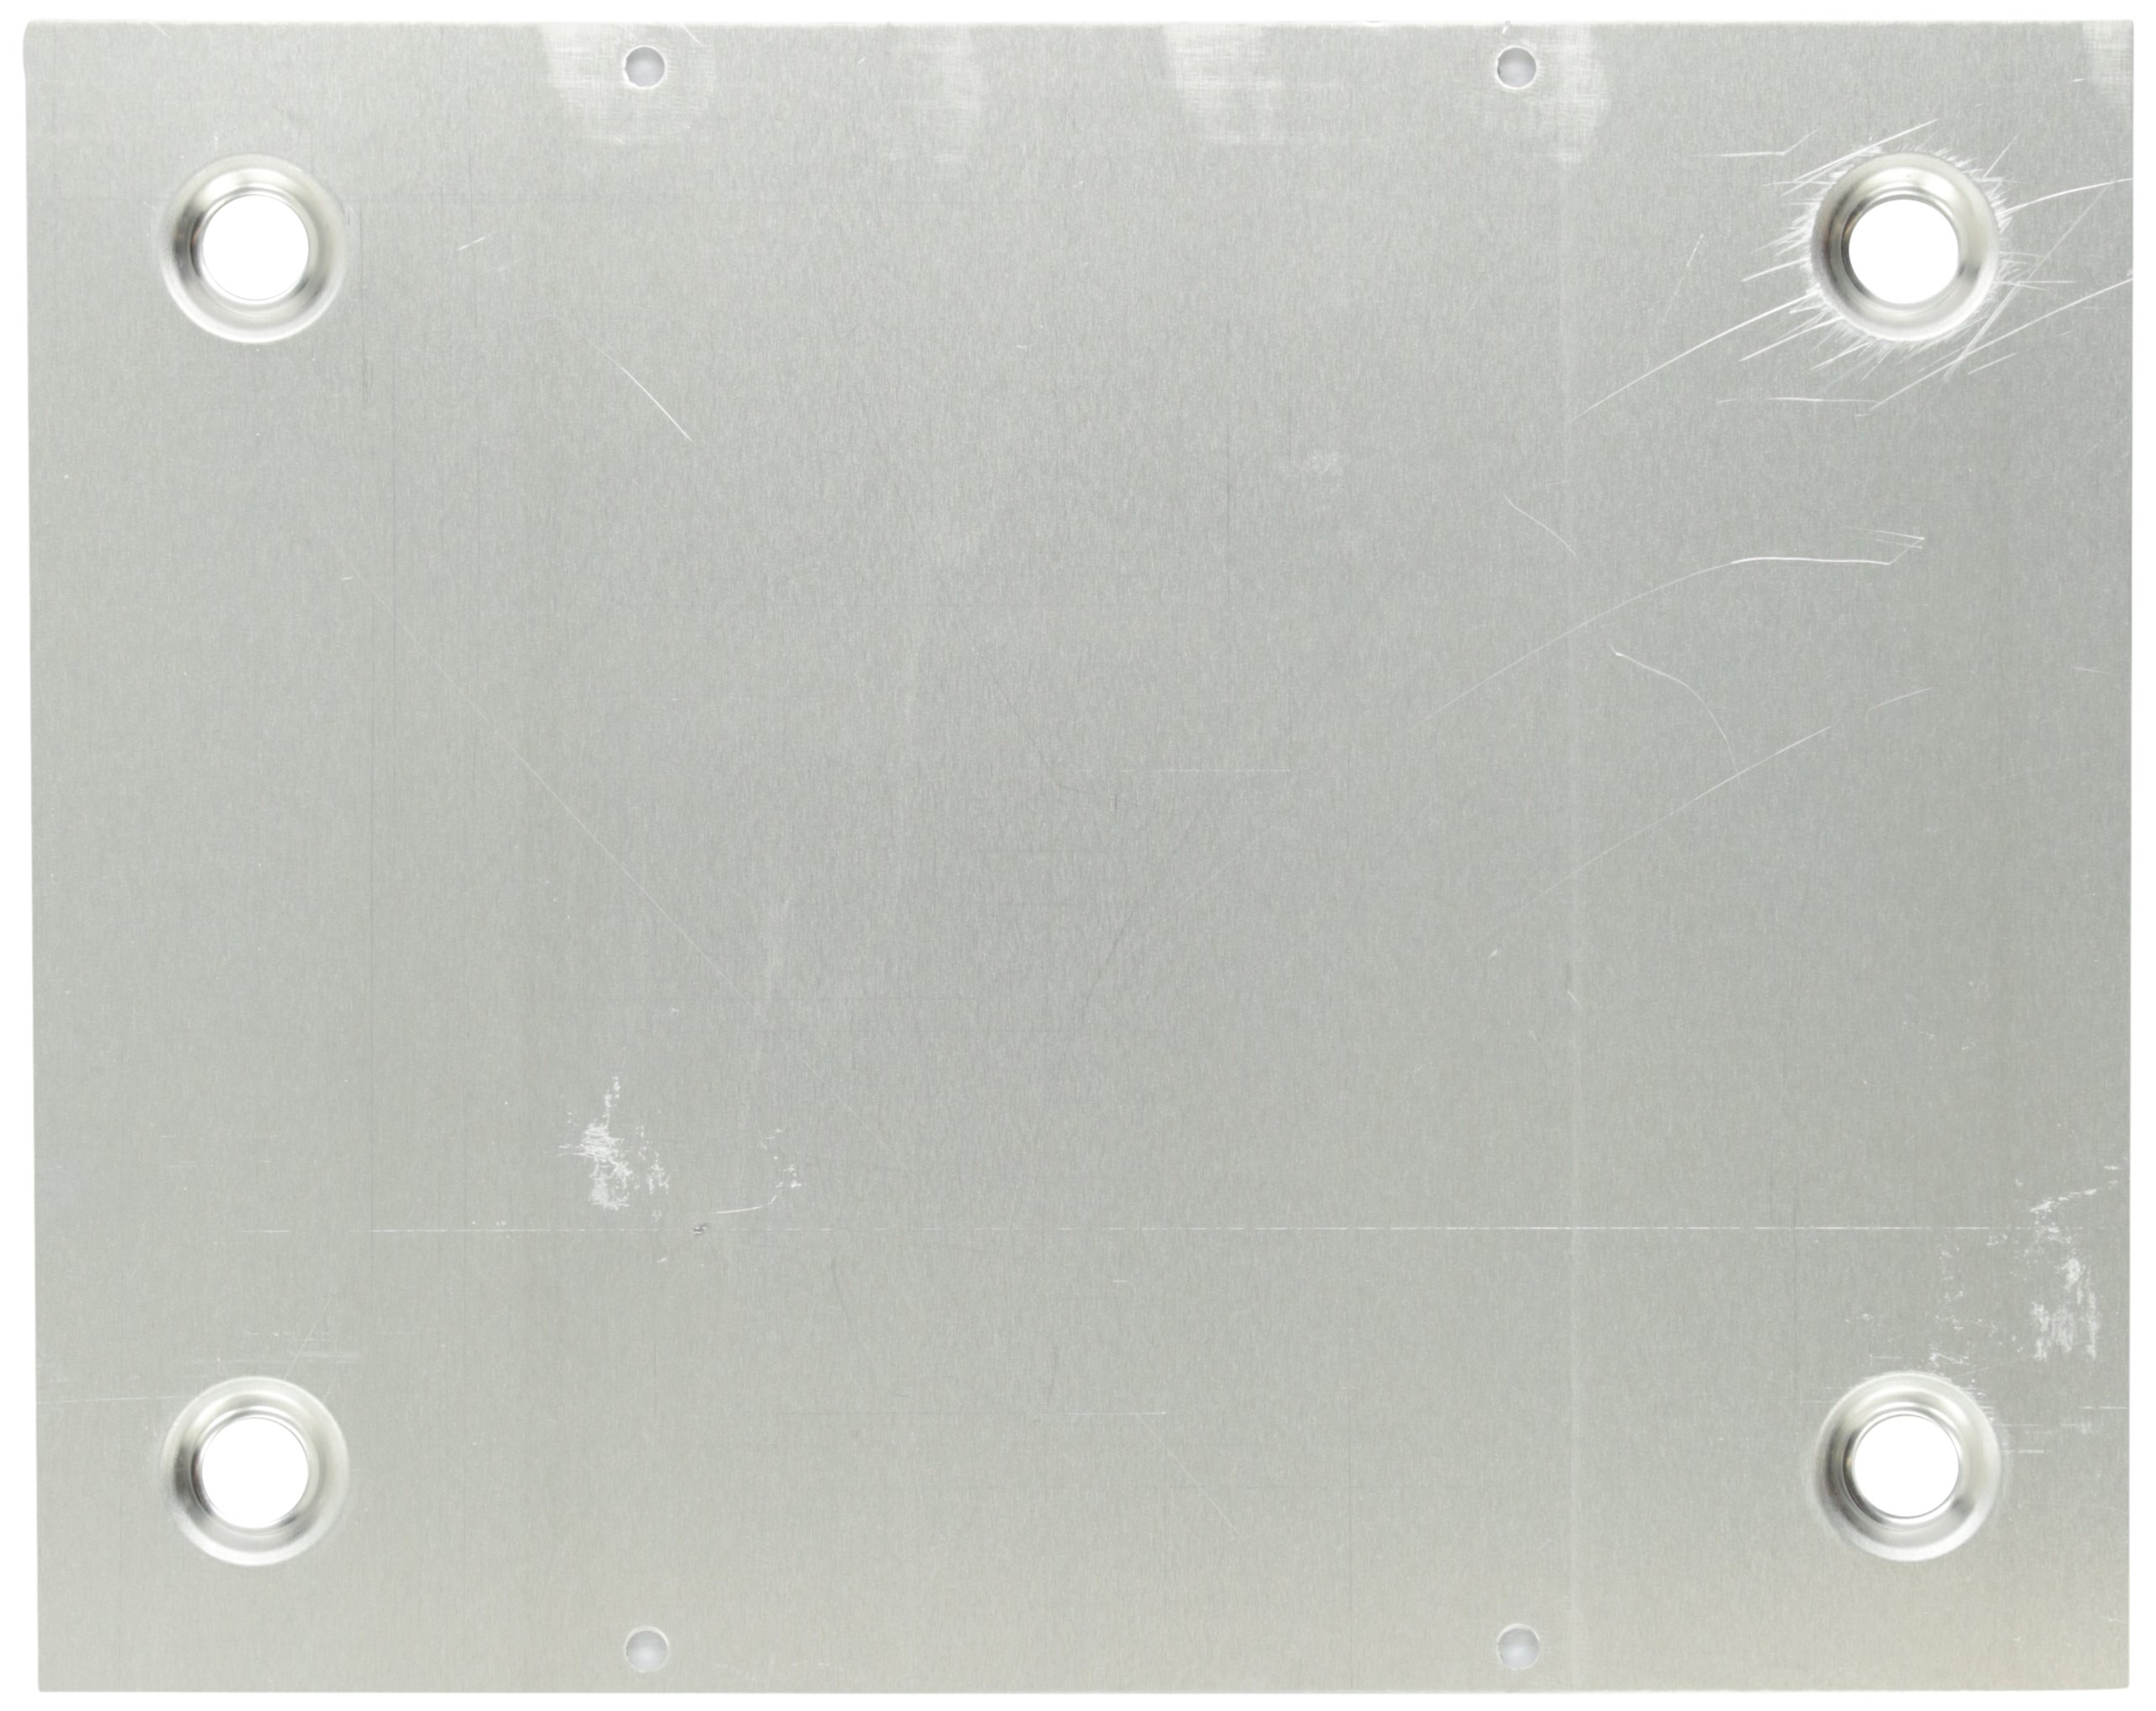 BUD Industries BPA-1518 Aluminum Chassis Bottom Plate, 9-51/64'' Length x 7-51/64'' Width x 9/64'' Thick, Natural Finish